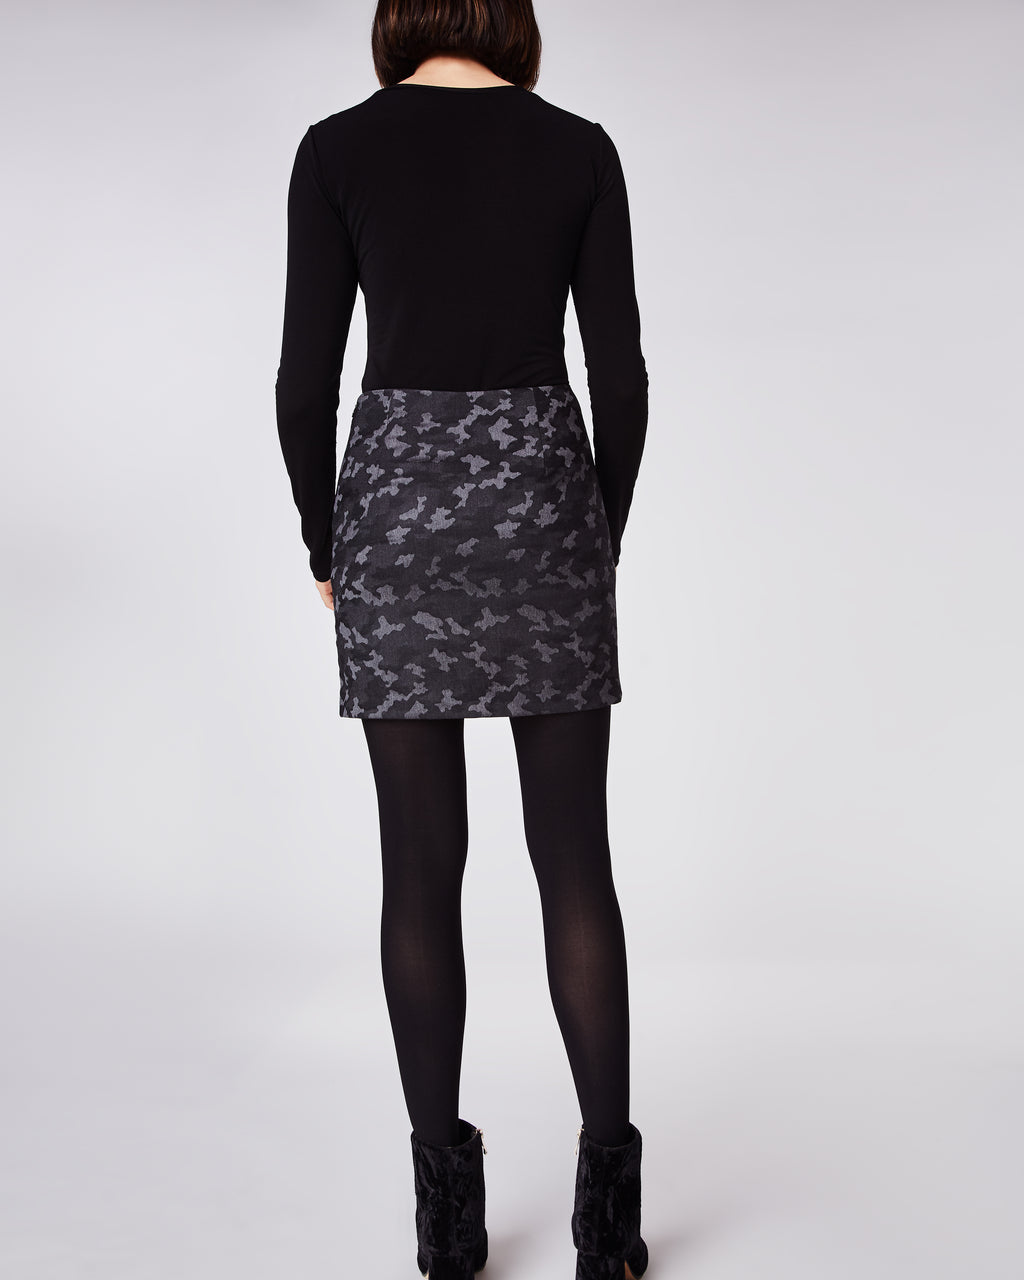 BD10251 - CAMO MINI SKIRT - bottoms - skirts - In a dark camo, this fitted mini skirt fall mid thigh and features a concealed zipper for closure.Wear with tights throughout the winter. Fully lined.